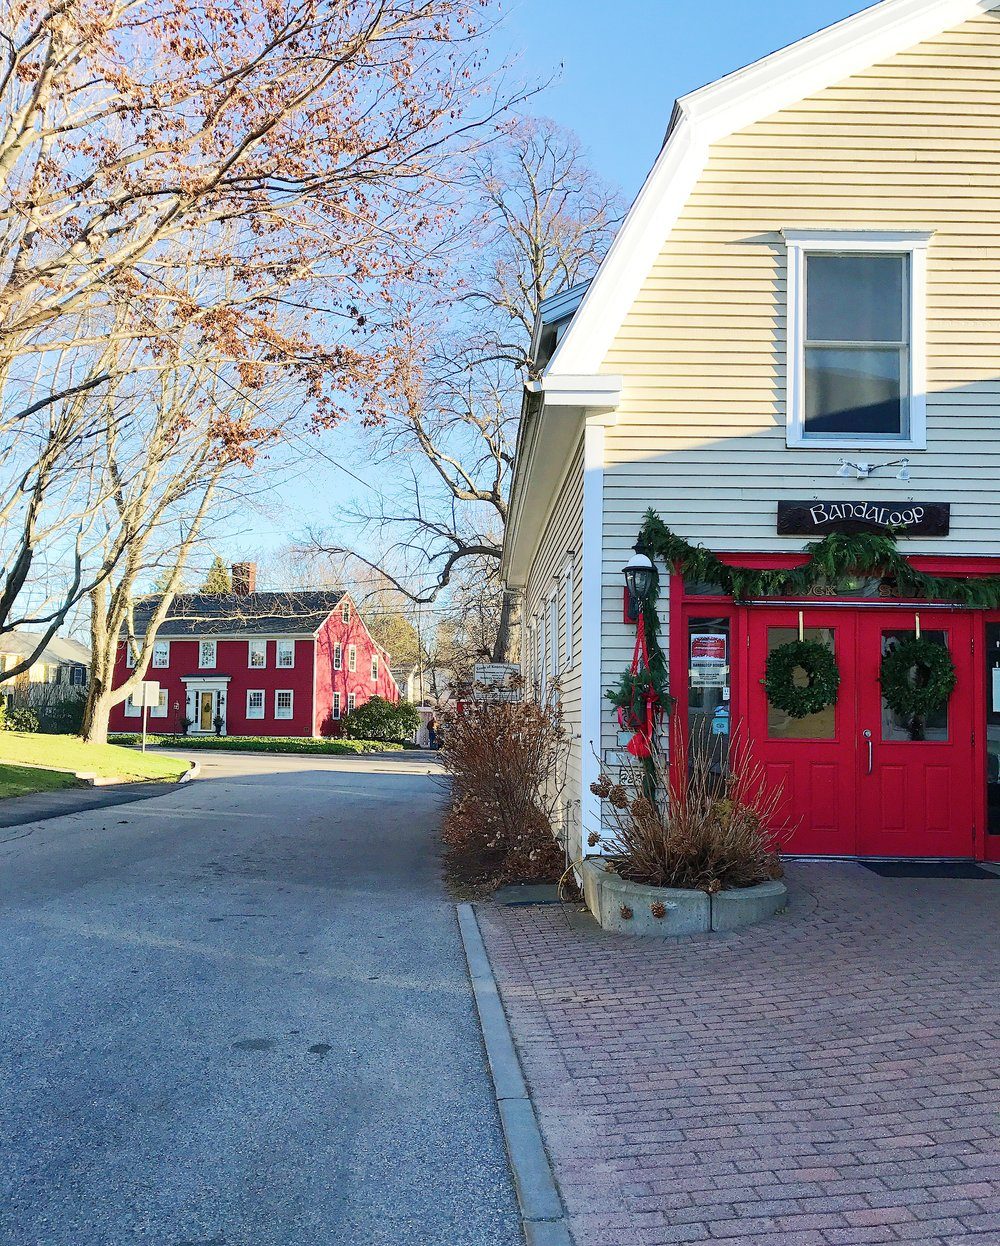 Christmas-Prelude-Kennebunkport-Maine-KPT-Blog-Portsmouth-NH-New-Hampshire-Seacoast-Lately-Stephanie-Stellwagen.jpg3.jpg